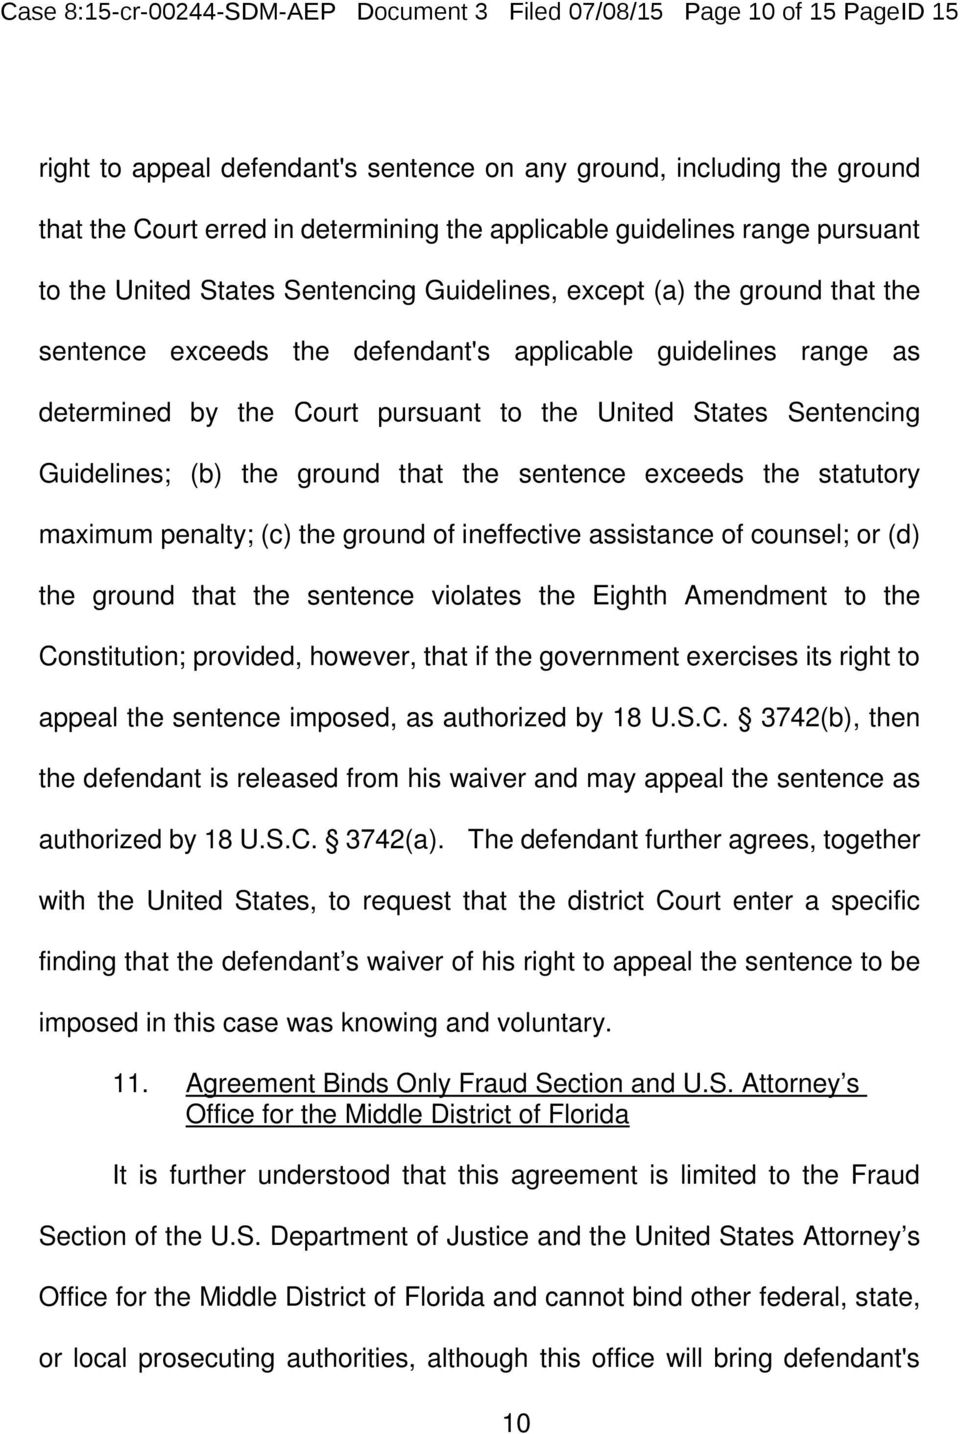 pursuant to the United States Sentencing Guidelines; (b) the ground that the sentence exceeds the statutory maximum penalty; (c) the ground of ineffective assistance of counsel; or (d) the ground